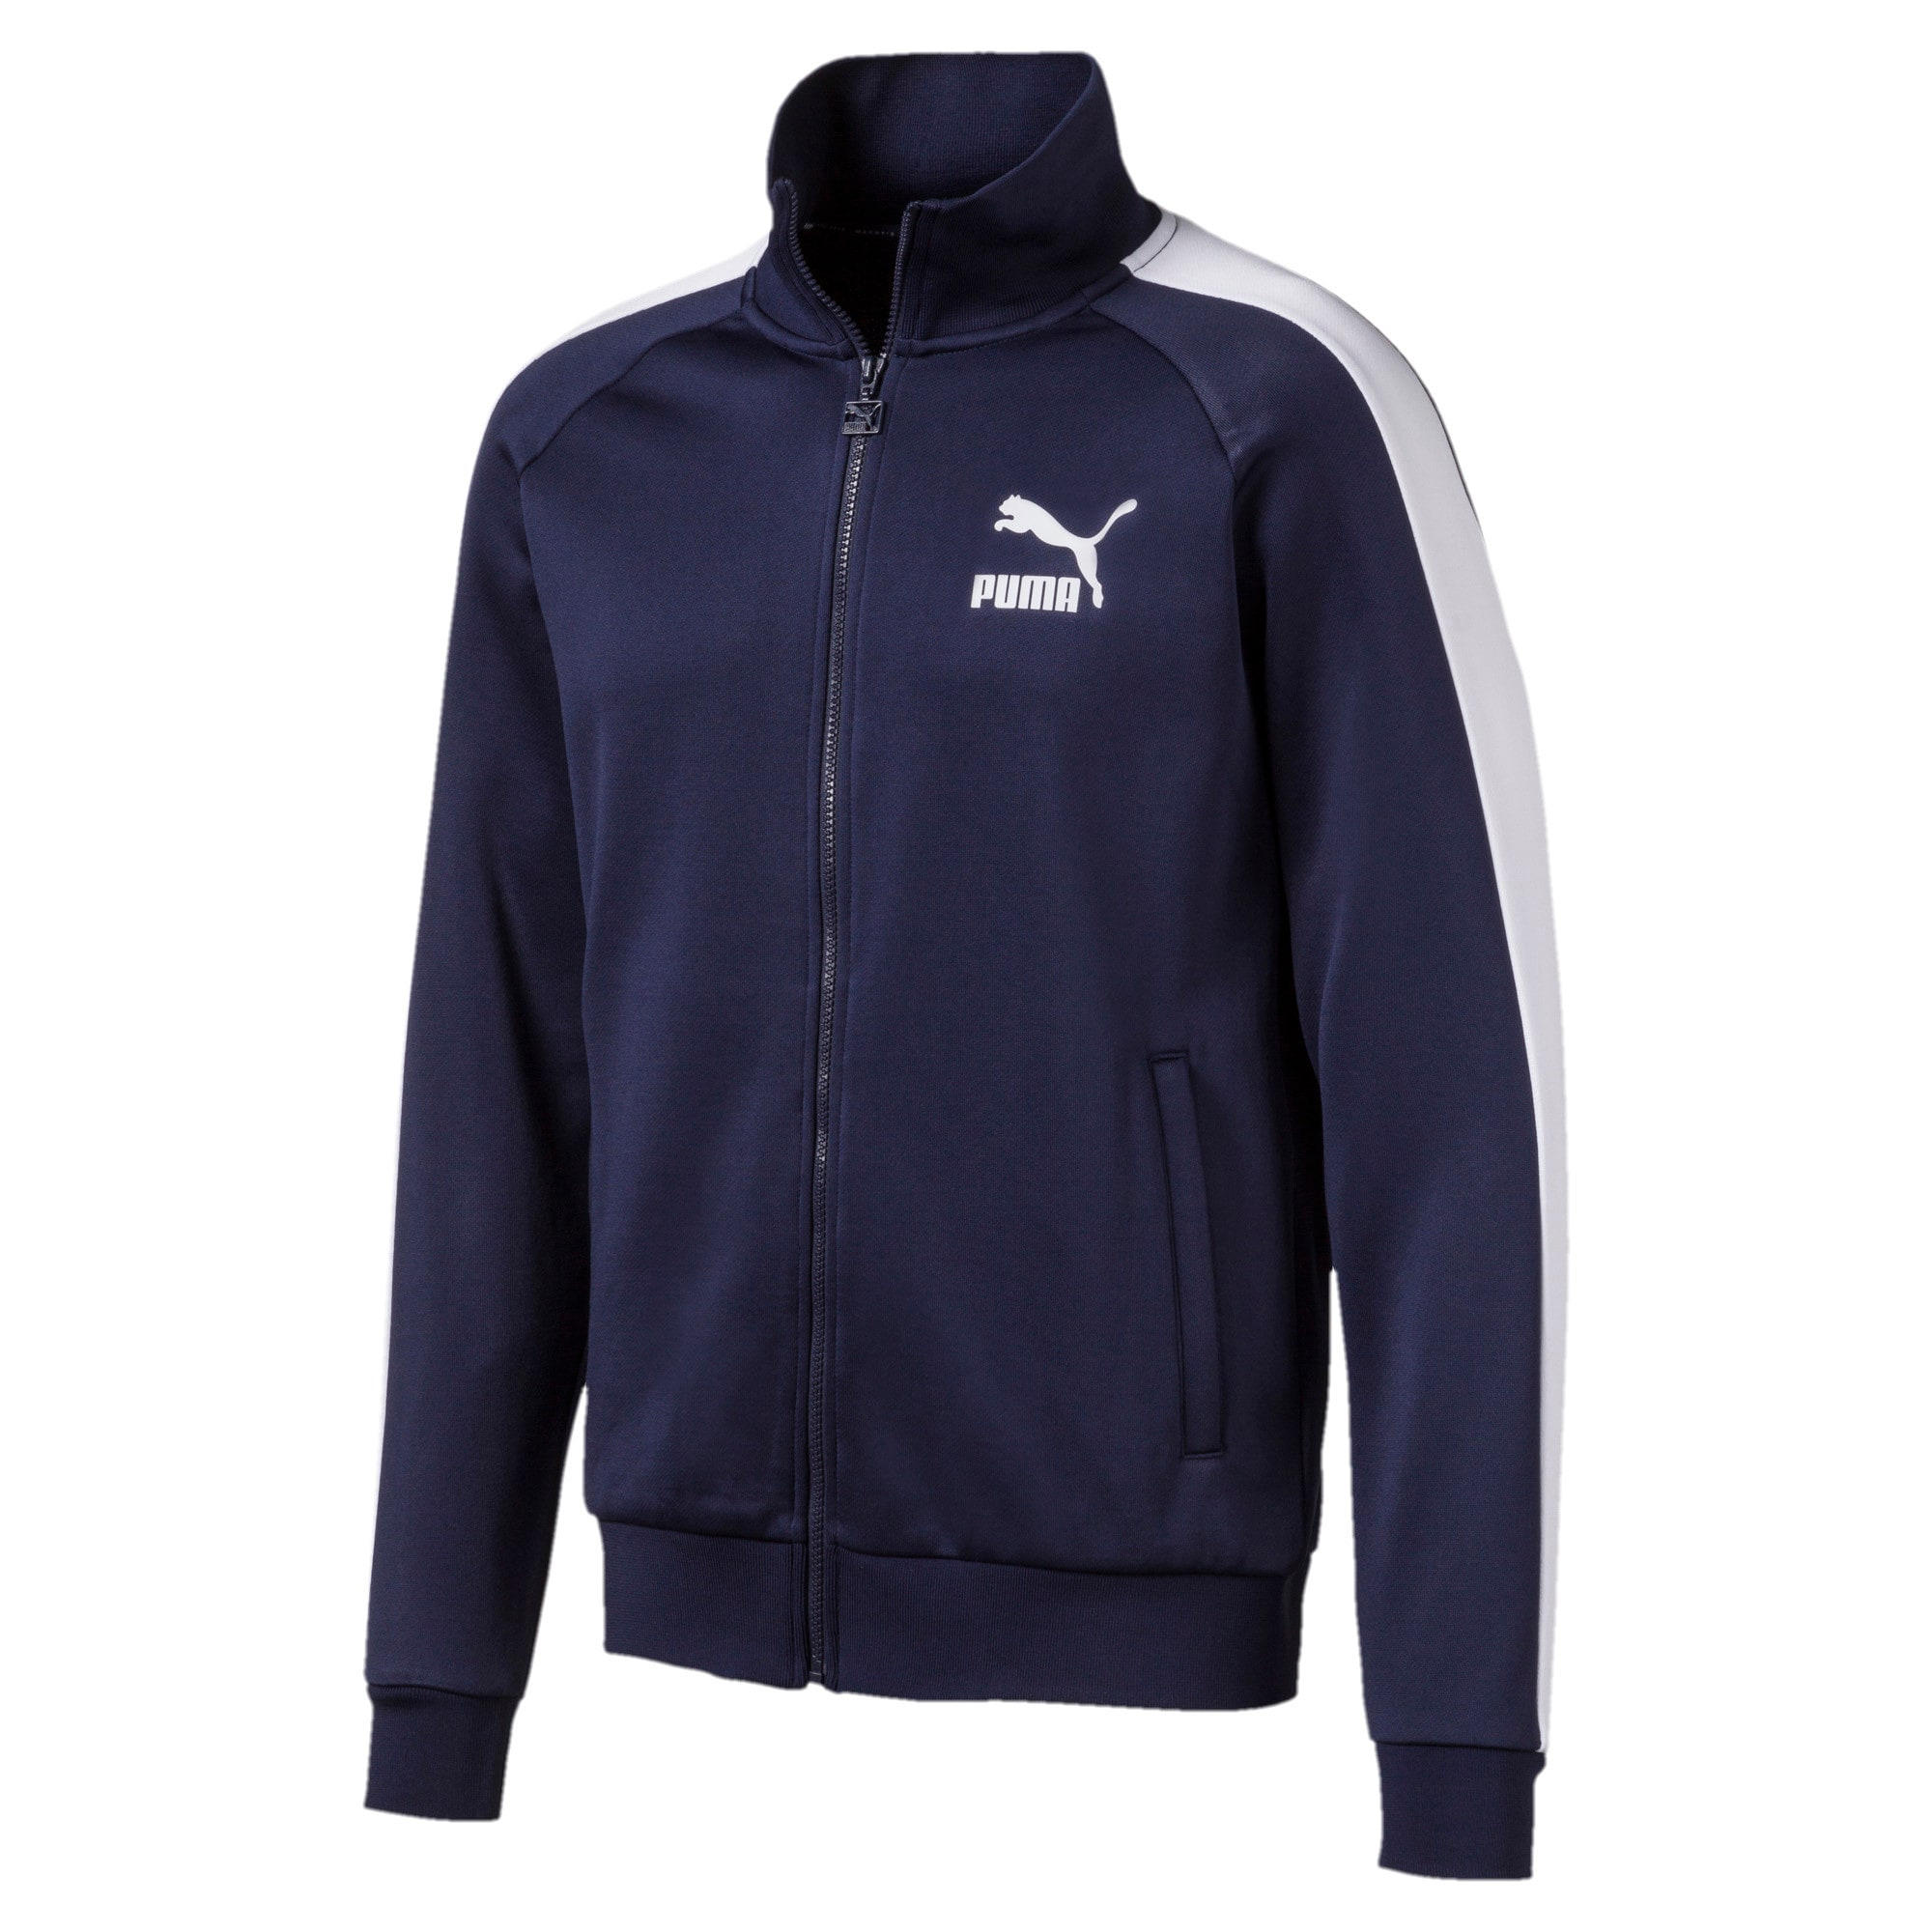 Thumbnail 1 of Iconic T7 Men's Track Jacket, Peacoat, medium